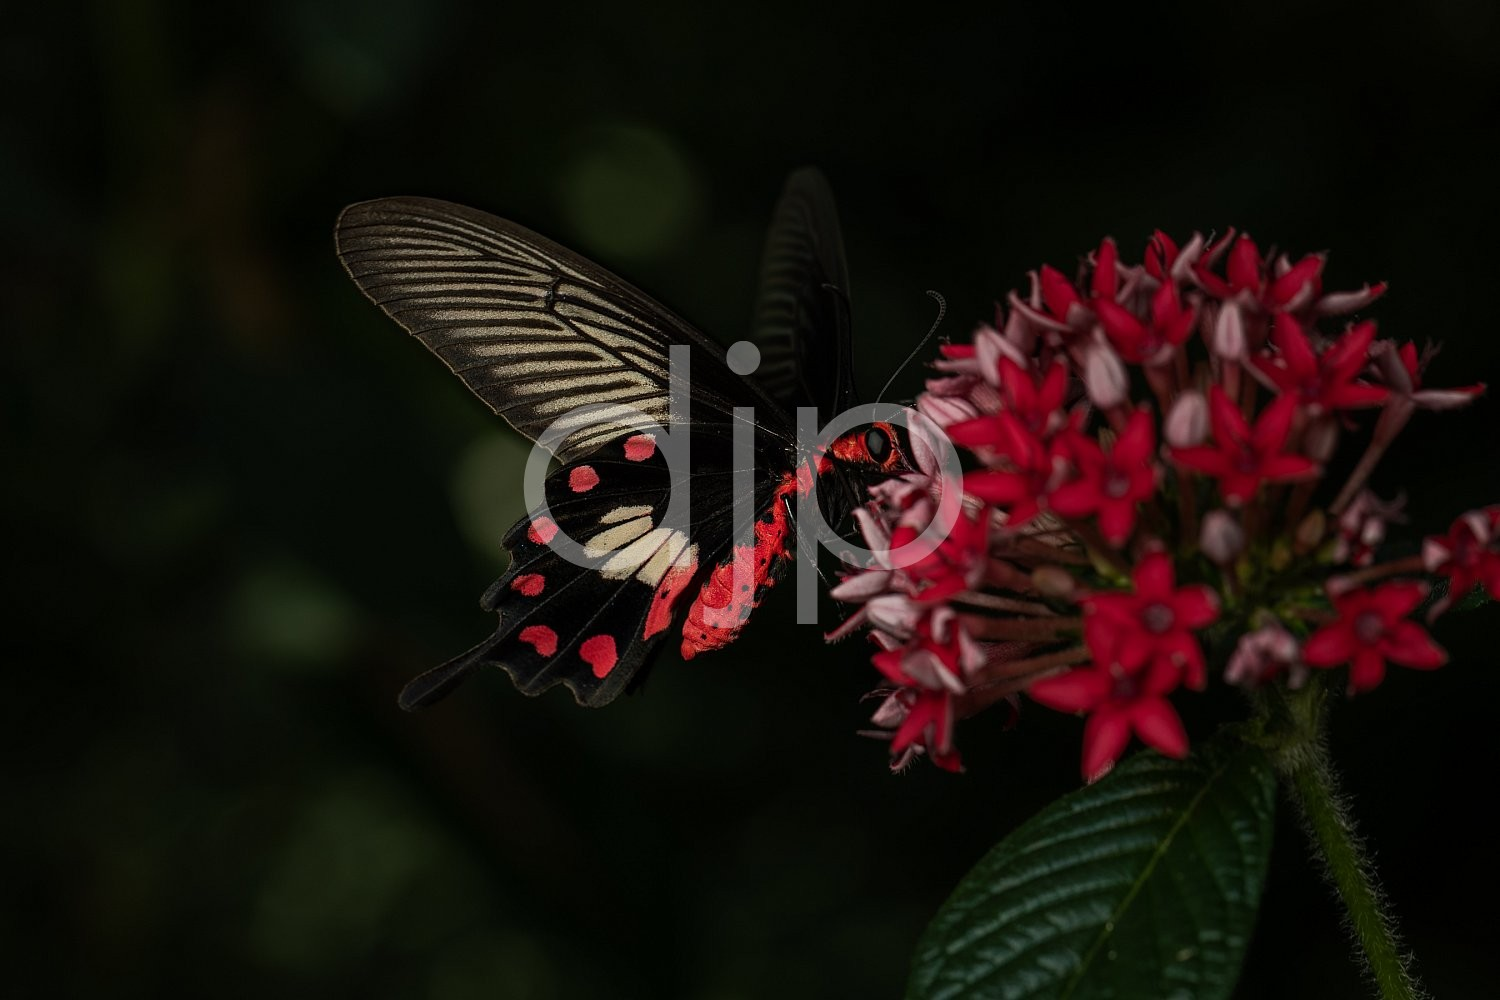 Butterfly Exhibit, D Jones Photography, HMNS, Houston Museum of Natural Science, butterfly, djonesphoto, macro, white, black